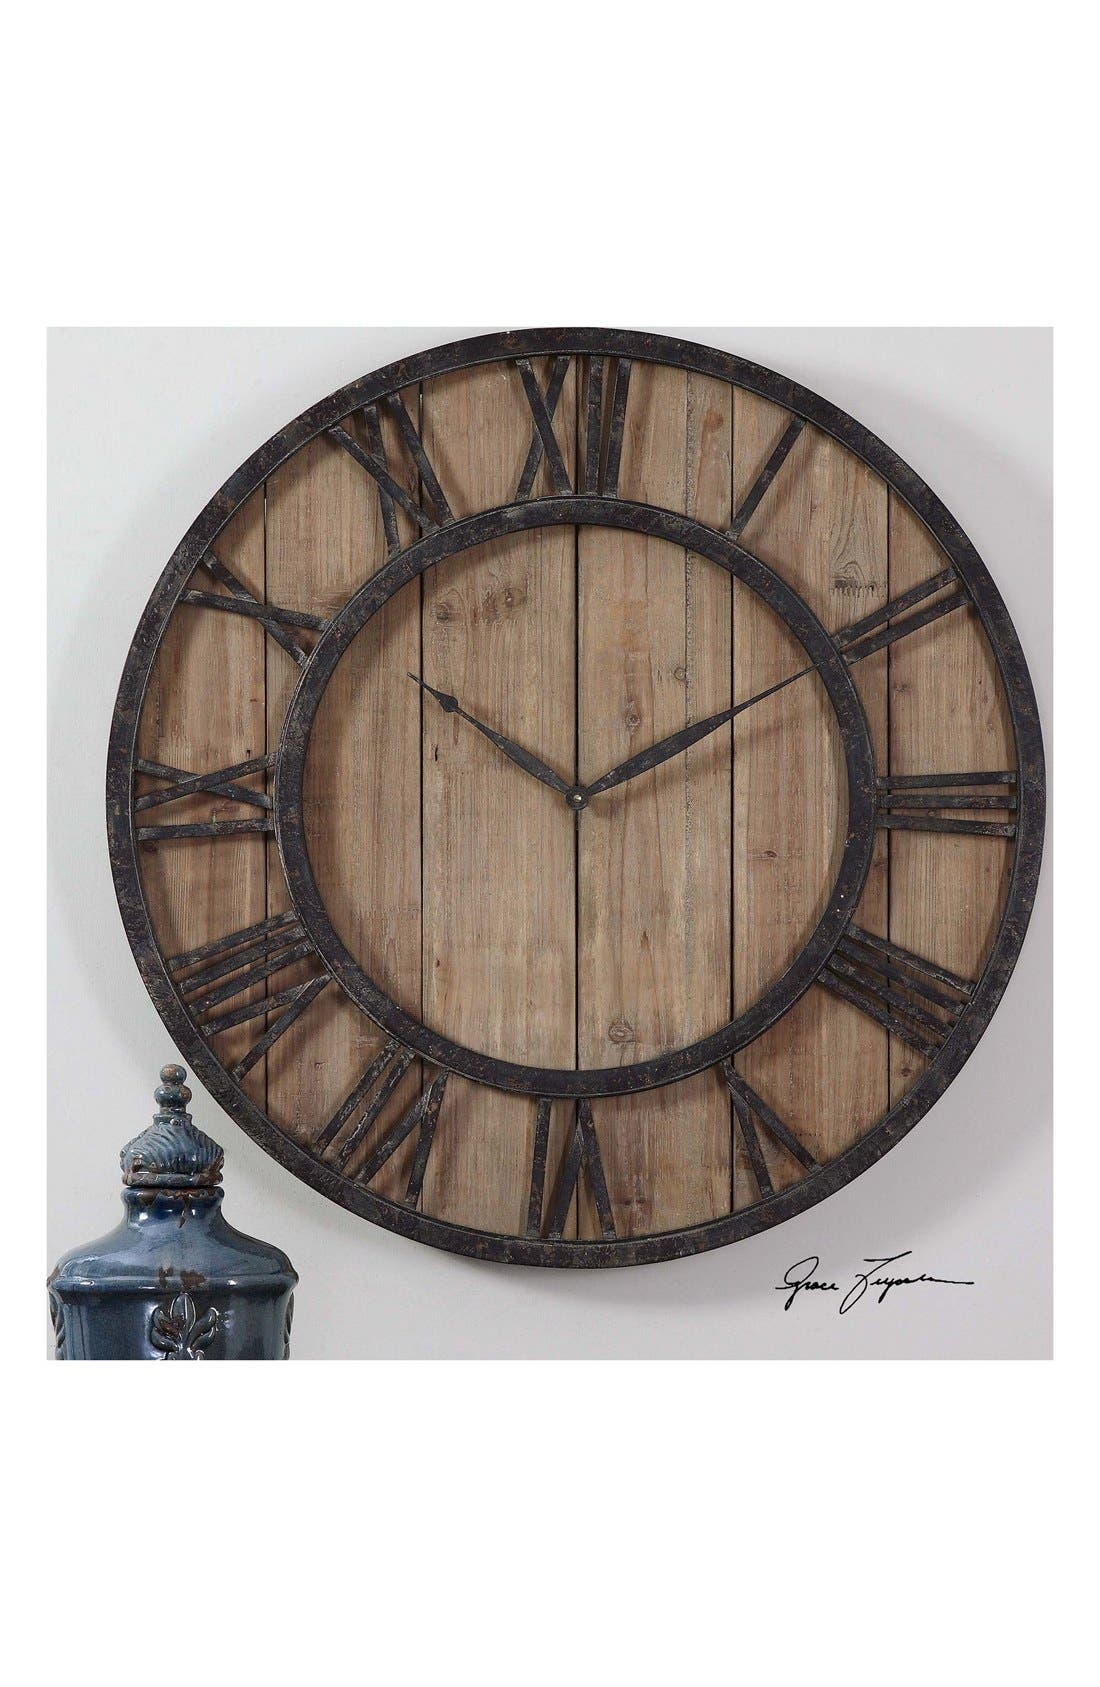 'Powell' Wooden Wall Clock,                             Alternate thumbnail 2, color,                             200